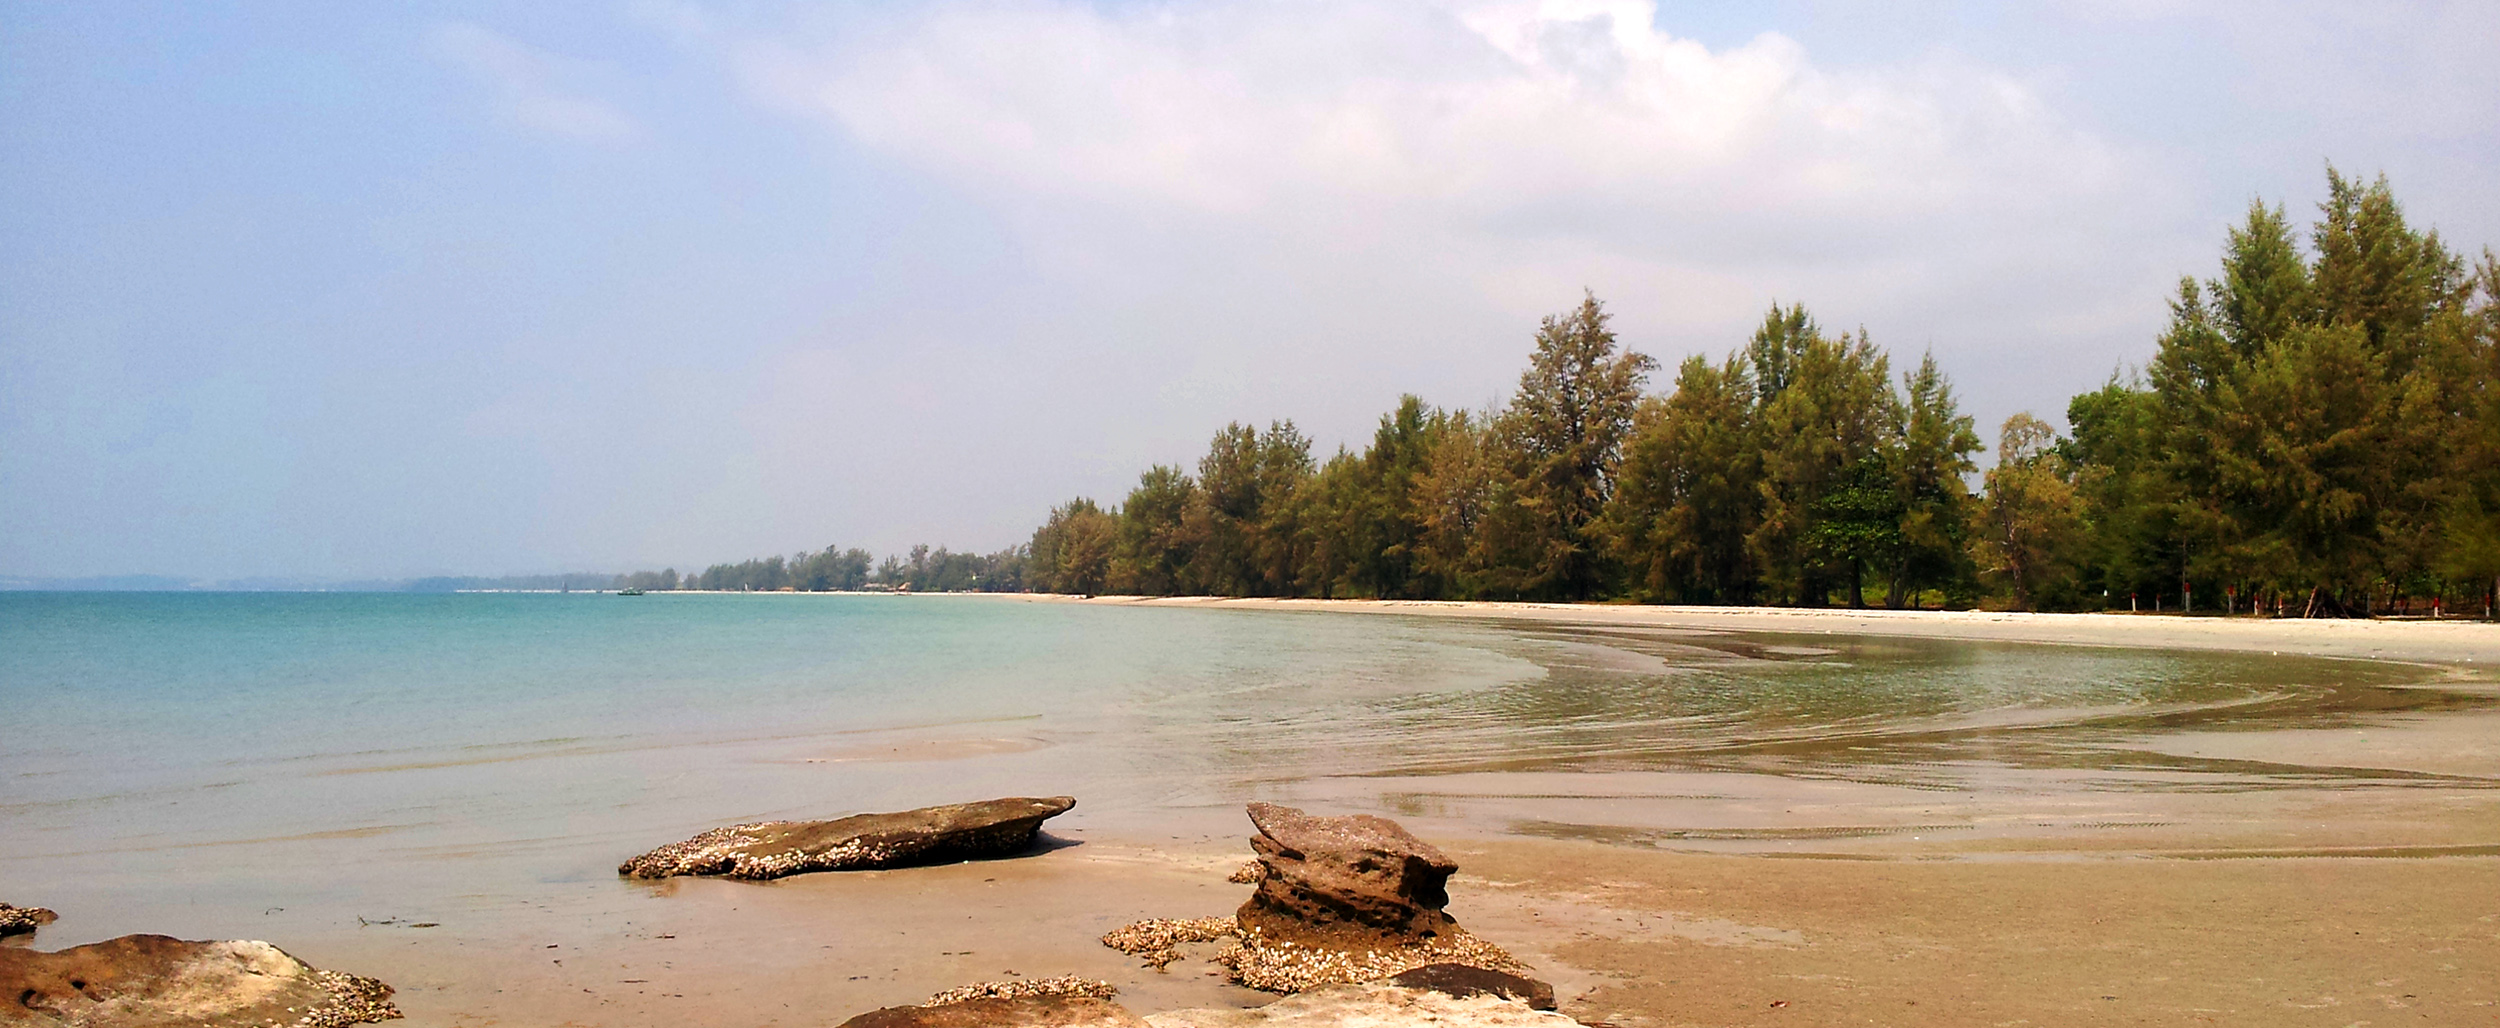 Otres Beach, Sihanoukville-Top Beach in Cambodia to Enjoy The Turquoise Ocean